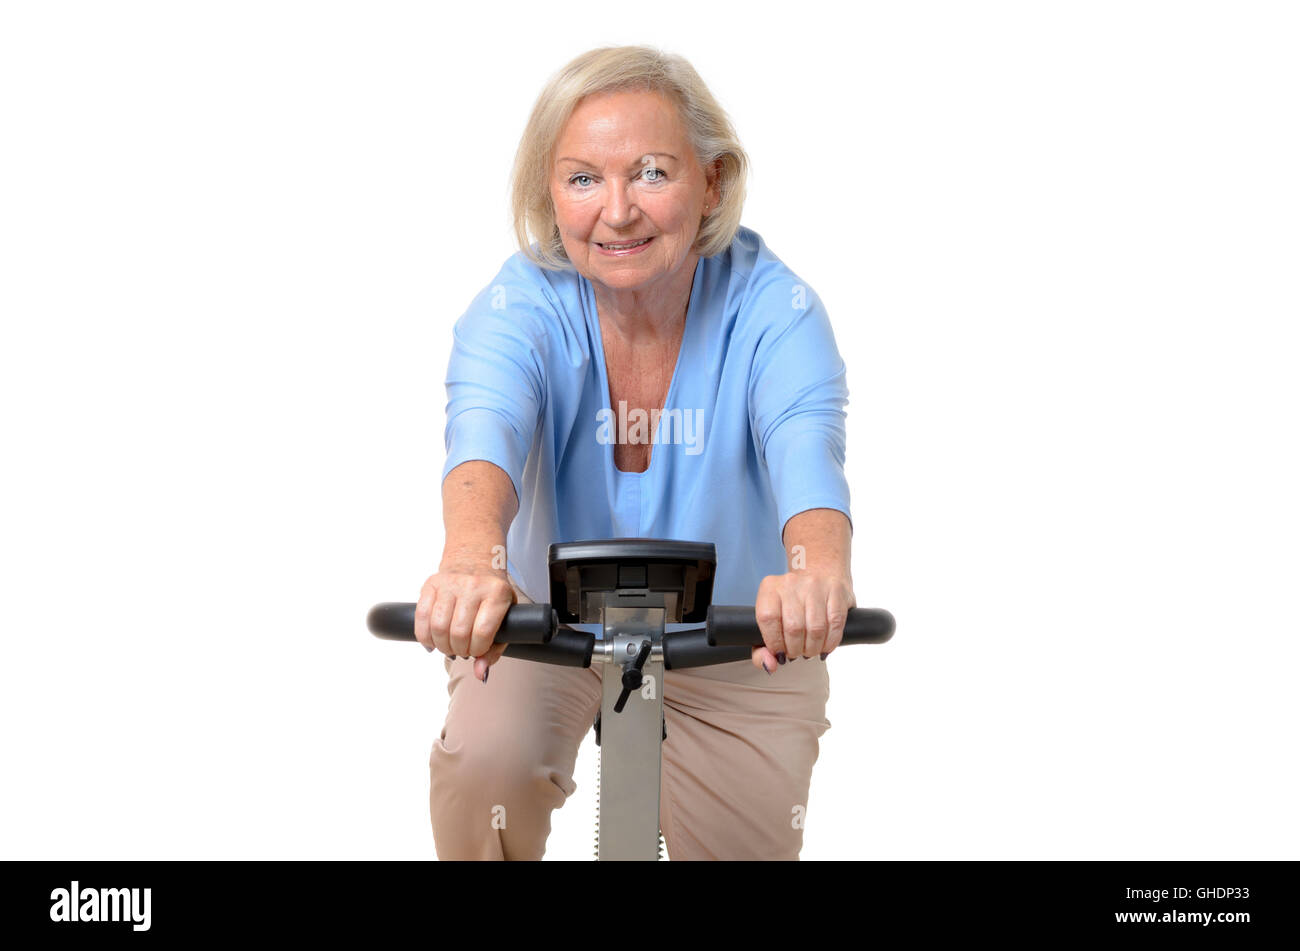 Smiling elderly woman riding an exercise bicycle at a gym or home